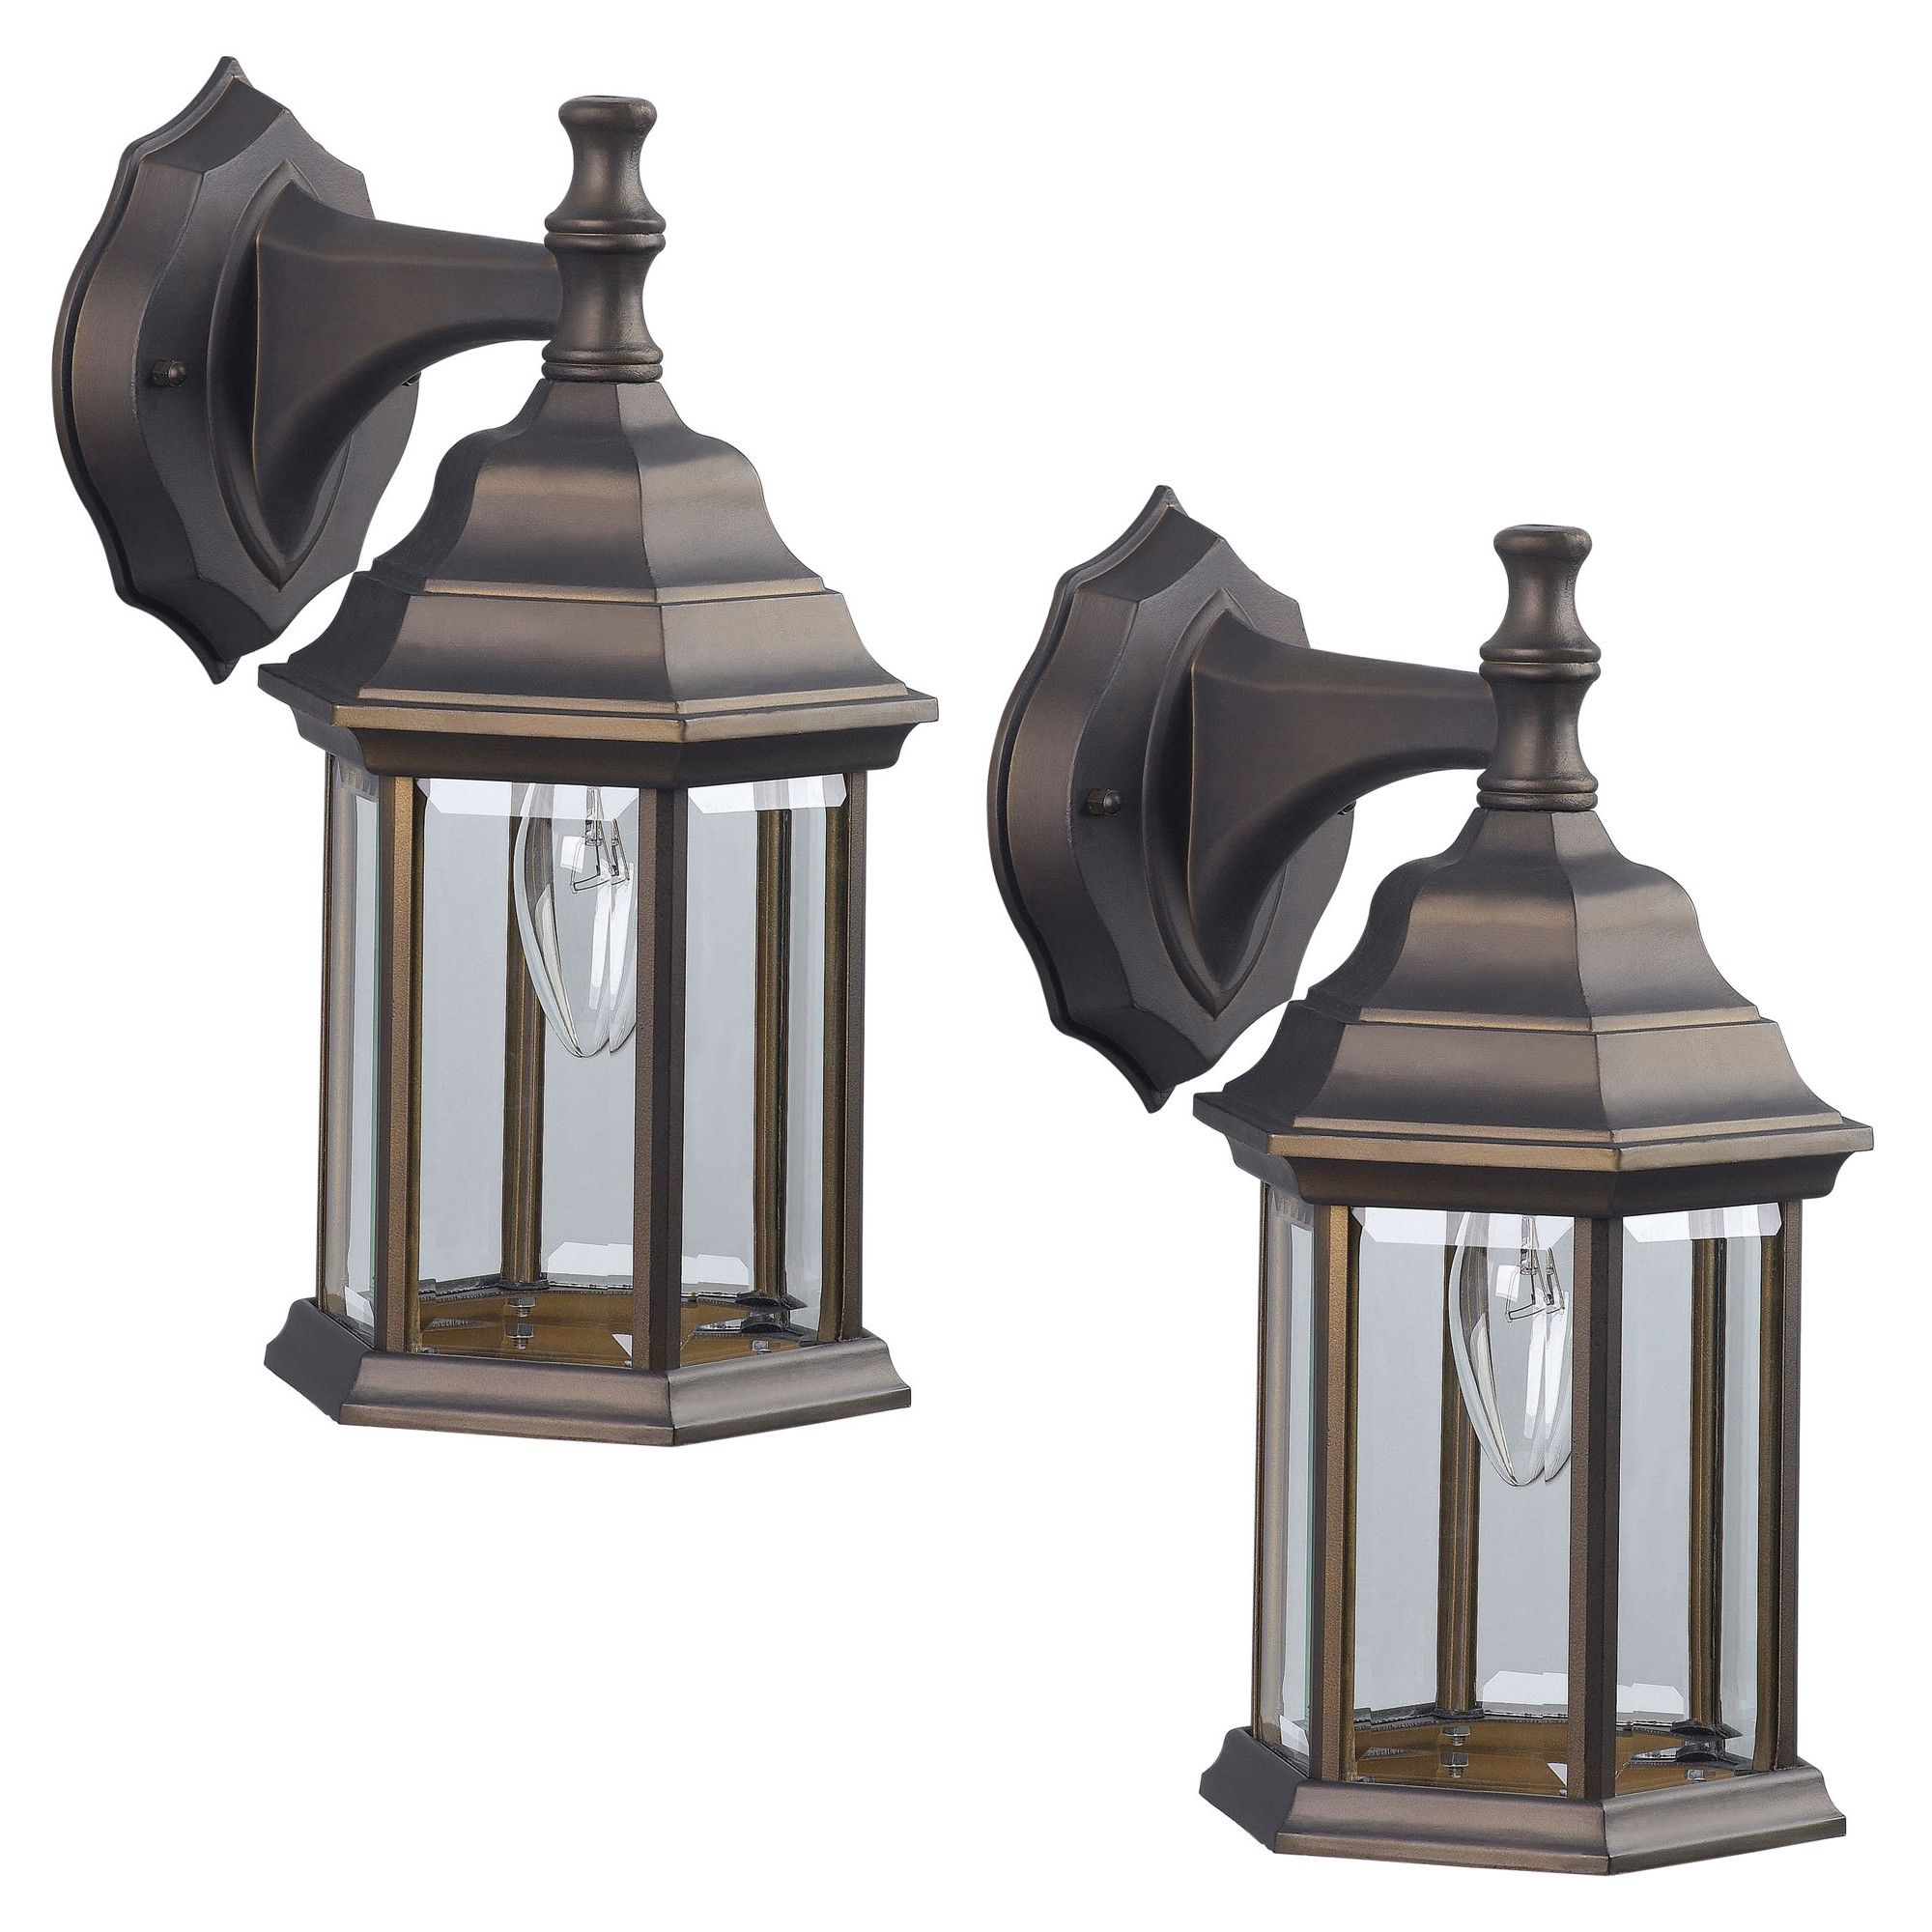 bennington iol4orb 2 pack outdoor exterior lantern light fixture rh pinterest com